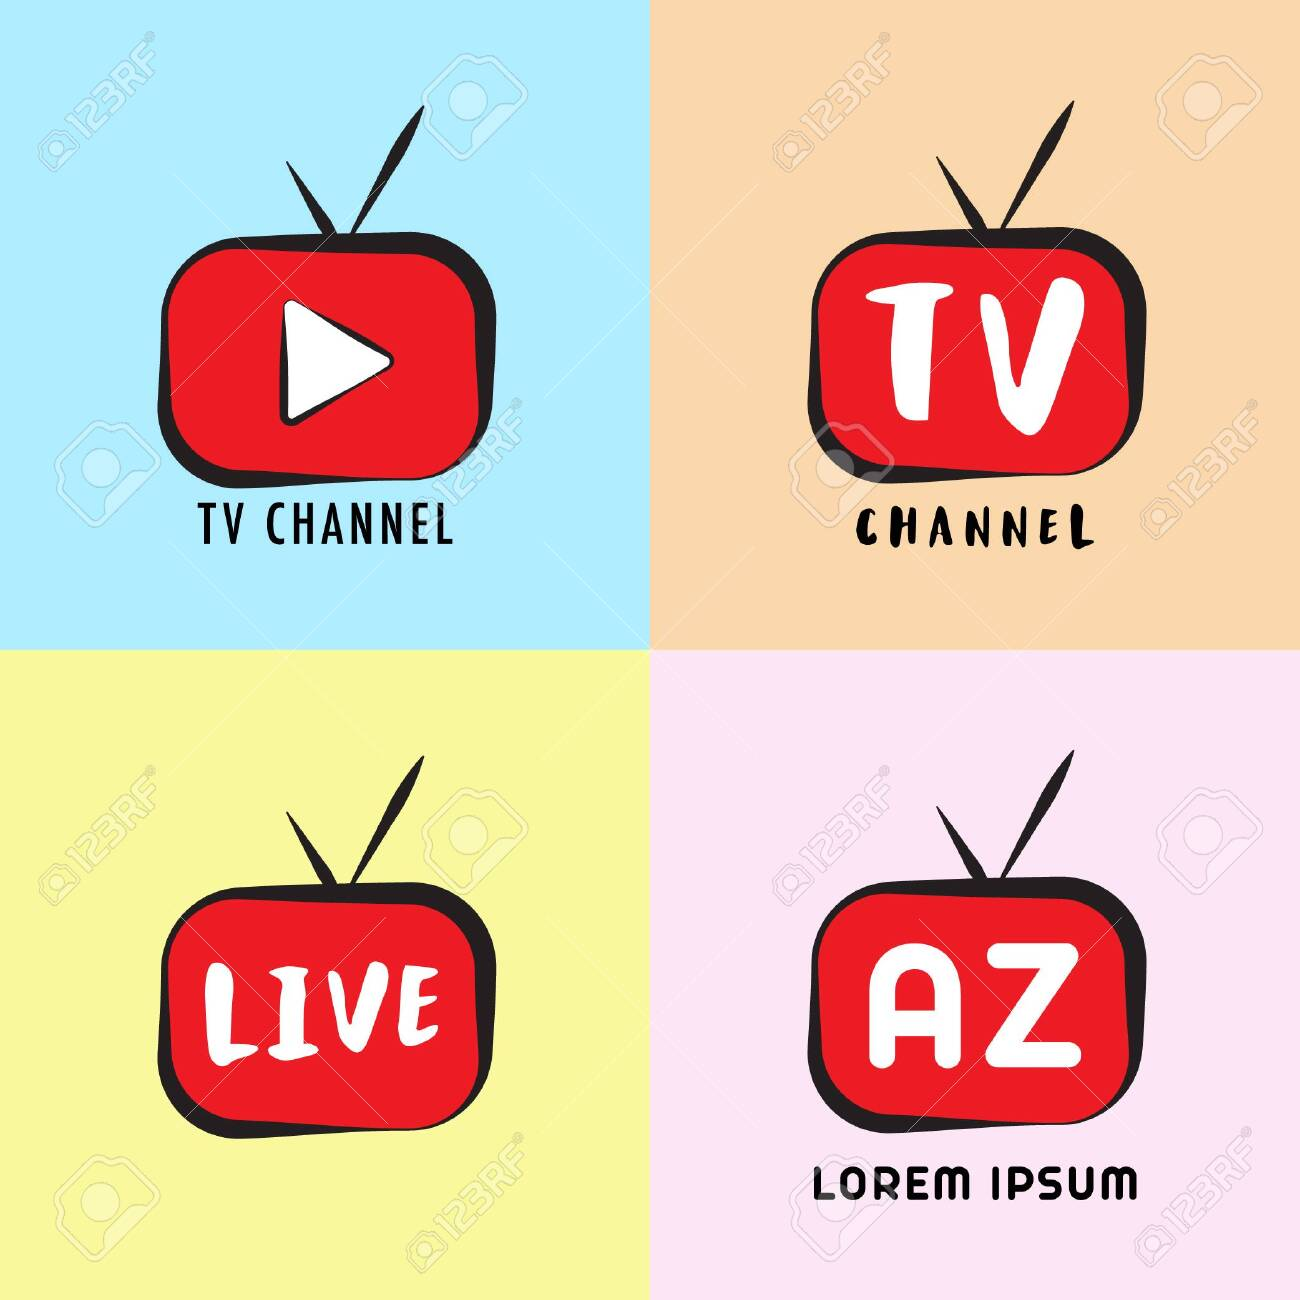 Live Streaming, Online Television, Web TV, Simple, Alphabetic, Pictorial,  Cartoon Concept With Play Button, Red, Black, Colorful Background, TV  Channel Logo Design Template Royalty Free Cliparts, Vectors, And Stock  Illustration. Image 126738051.